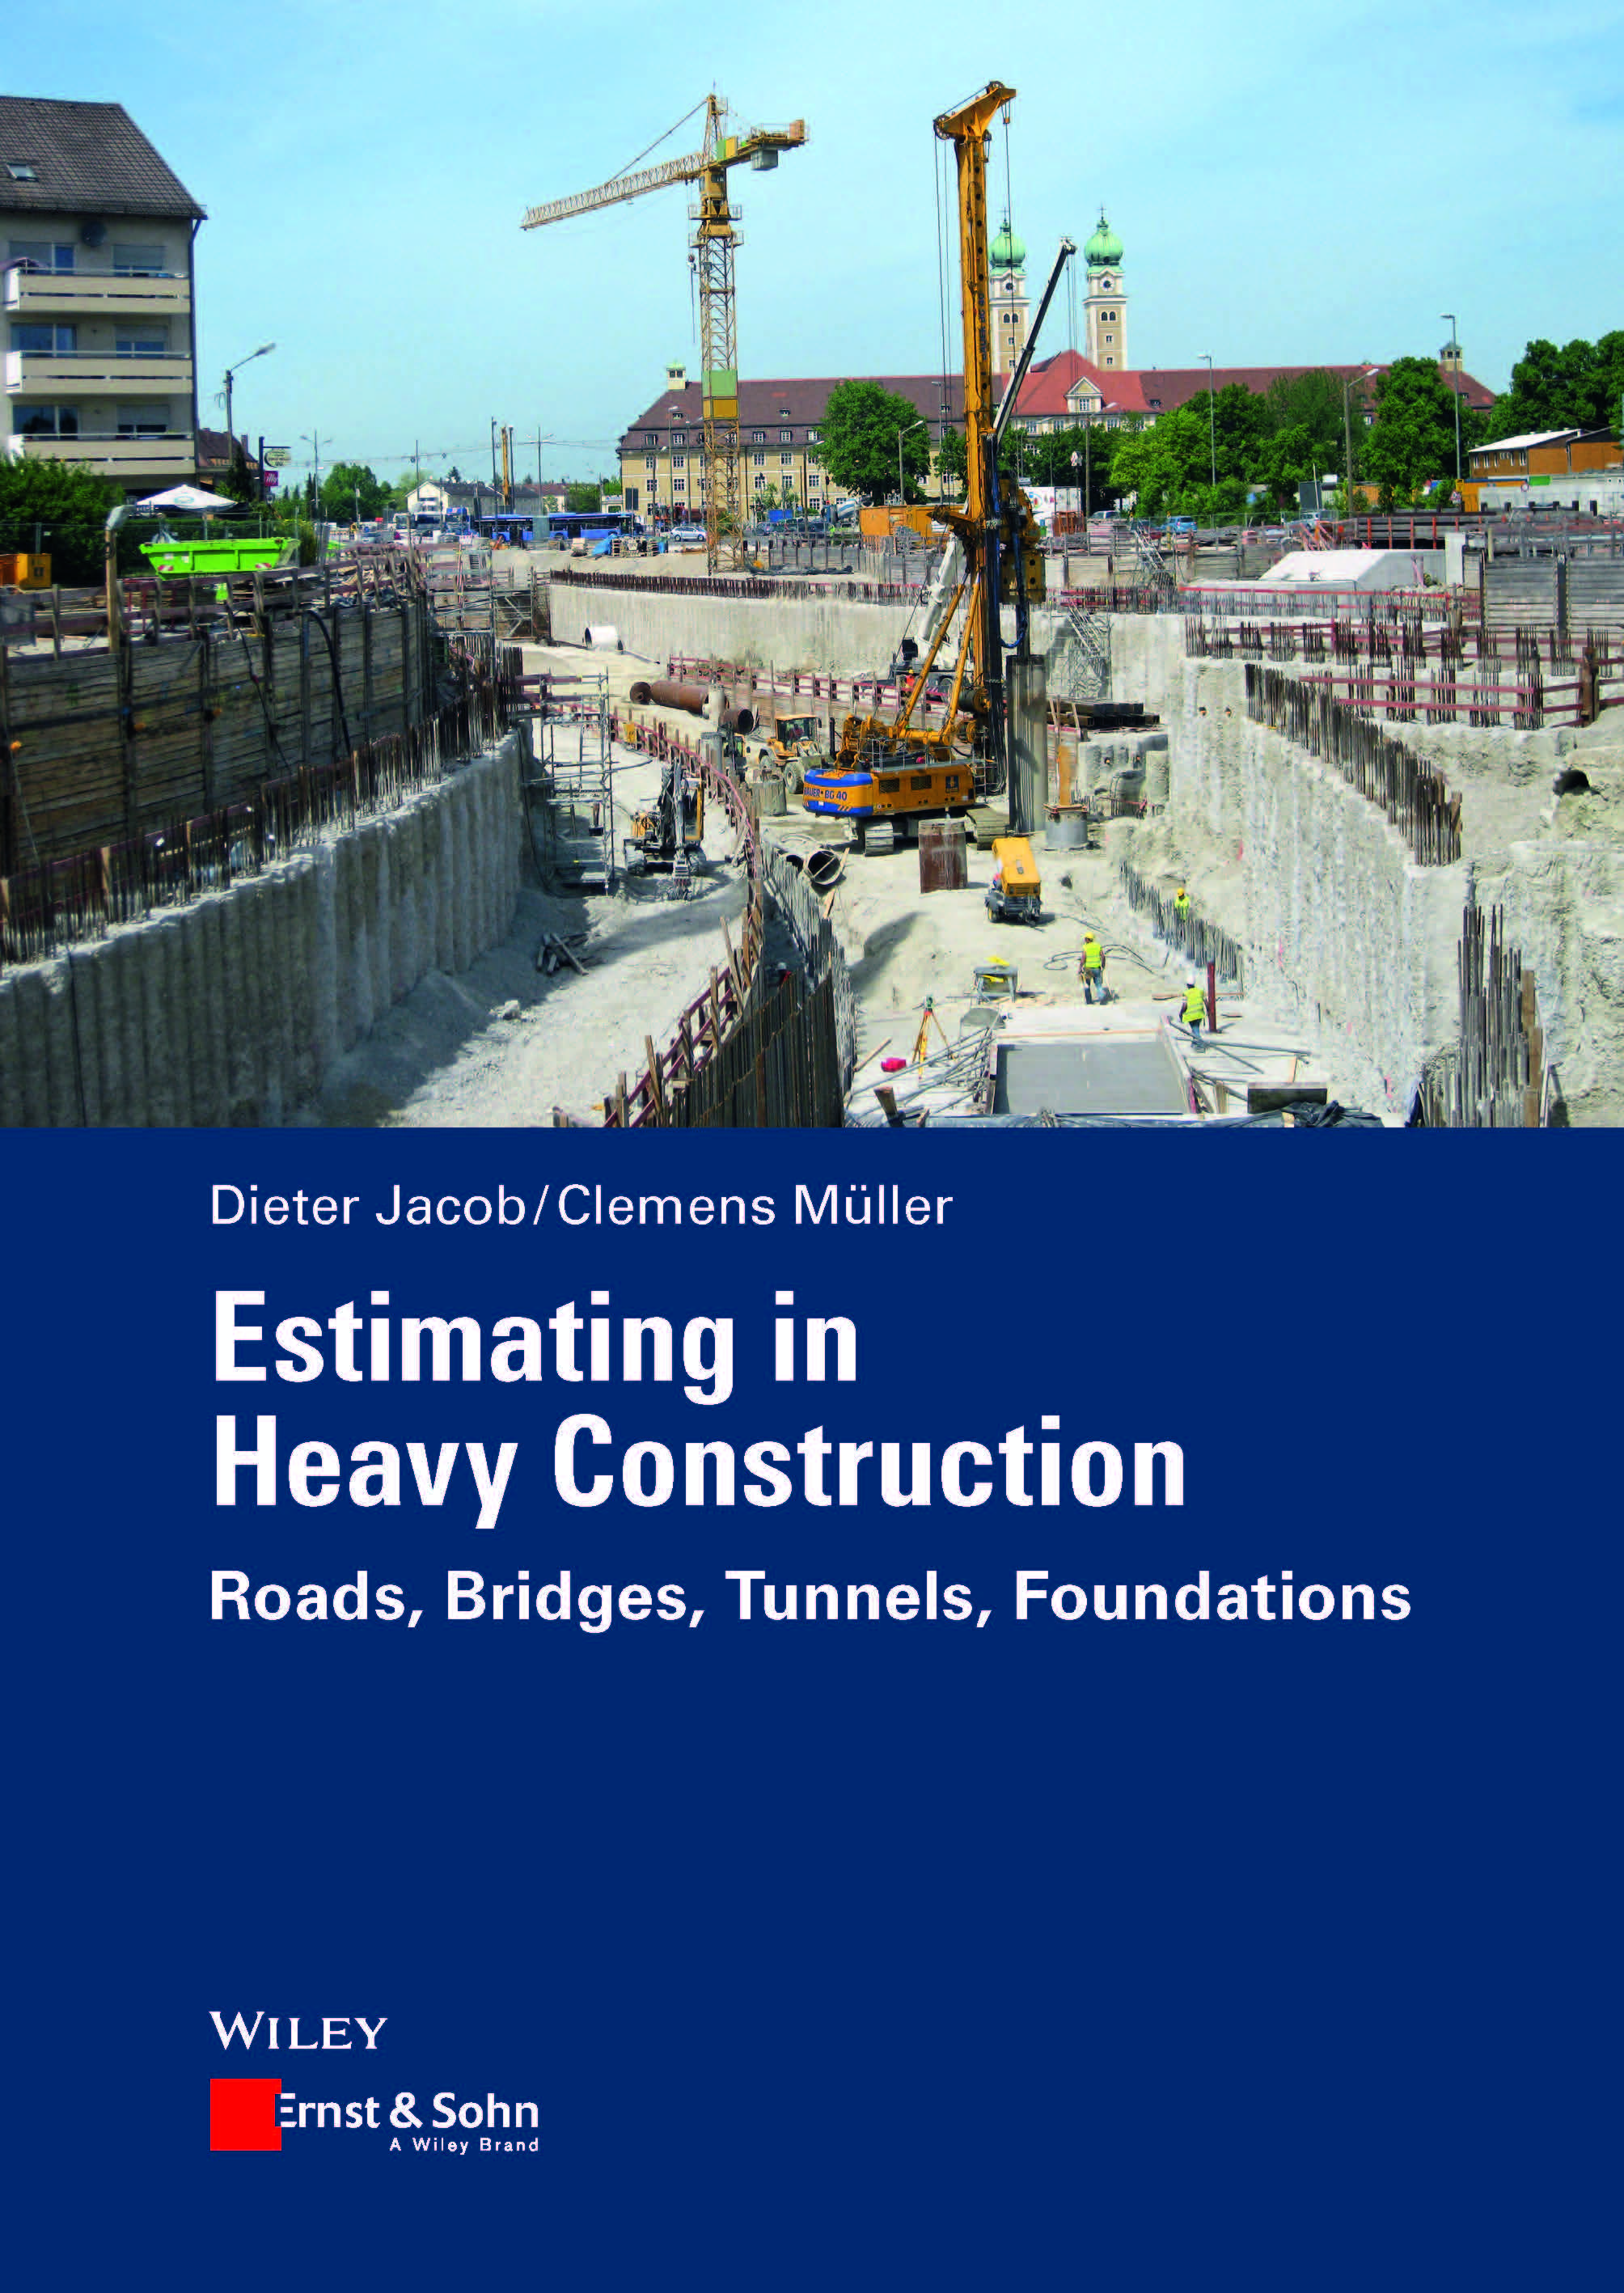 Brand new: Estimating in Heavy Construction